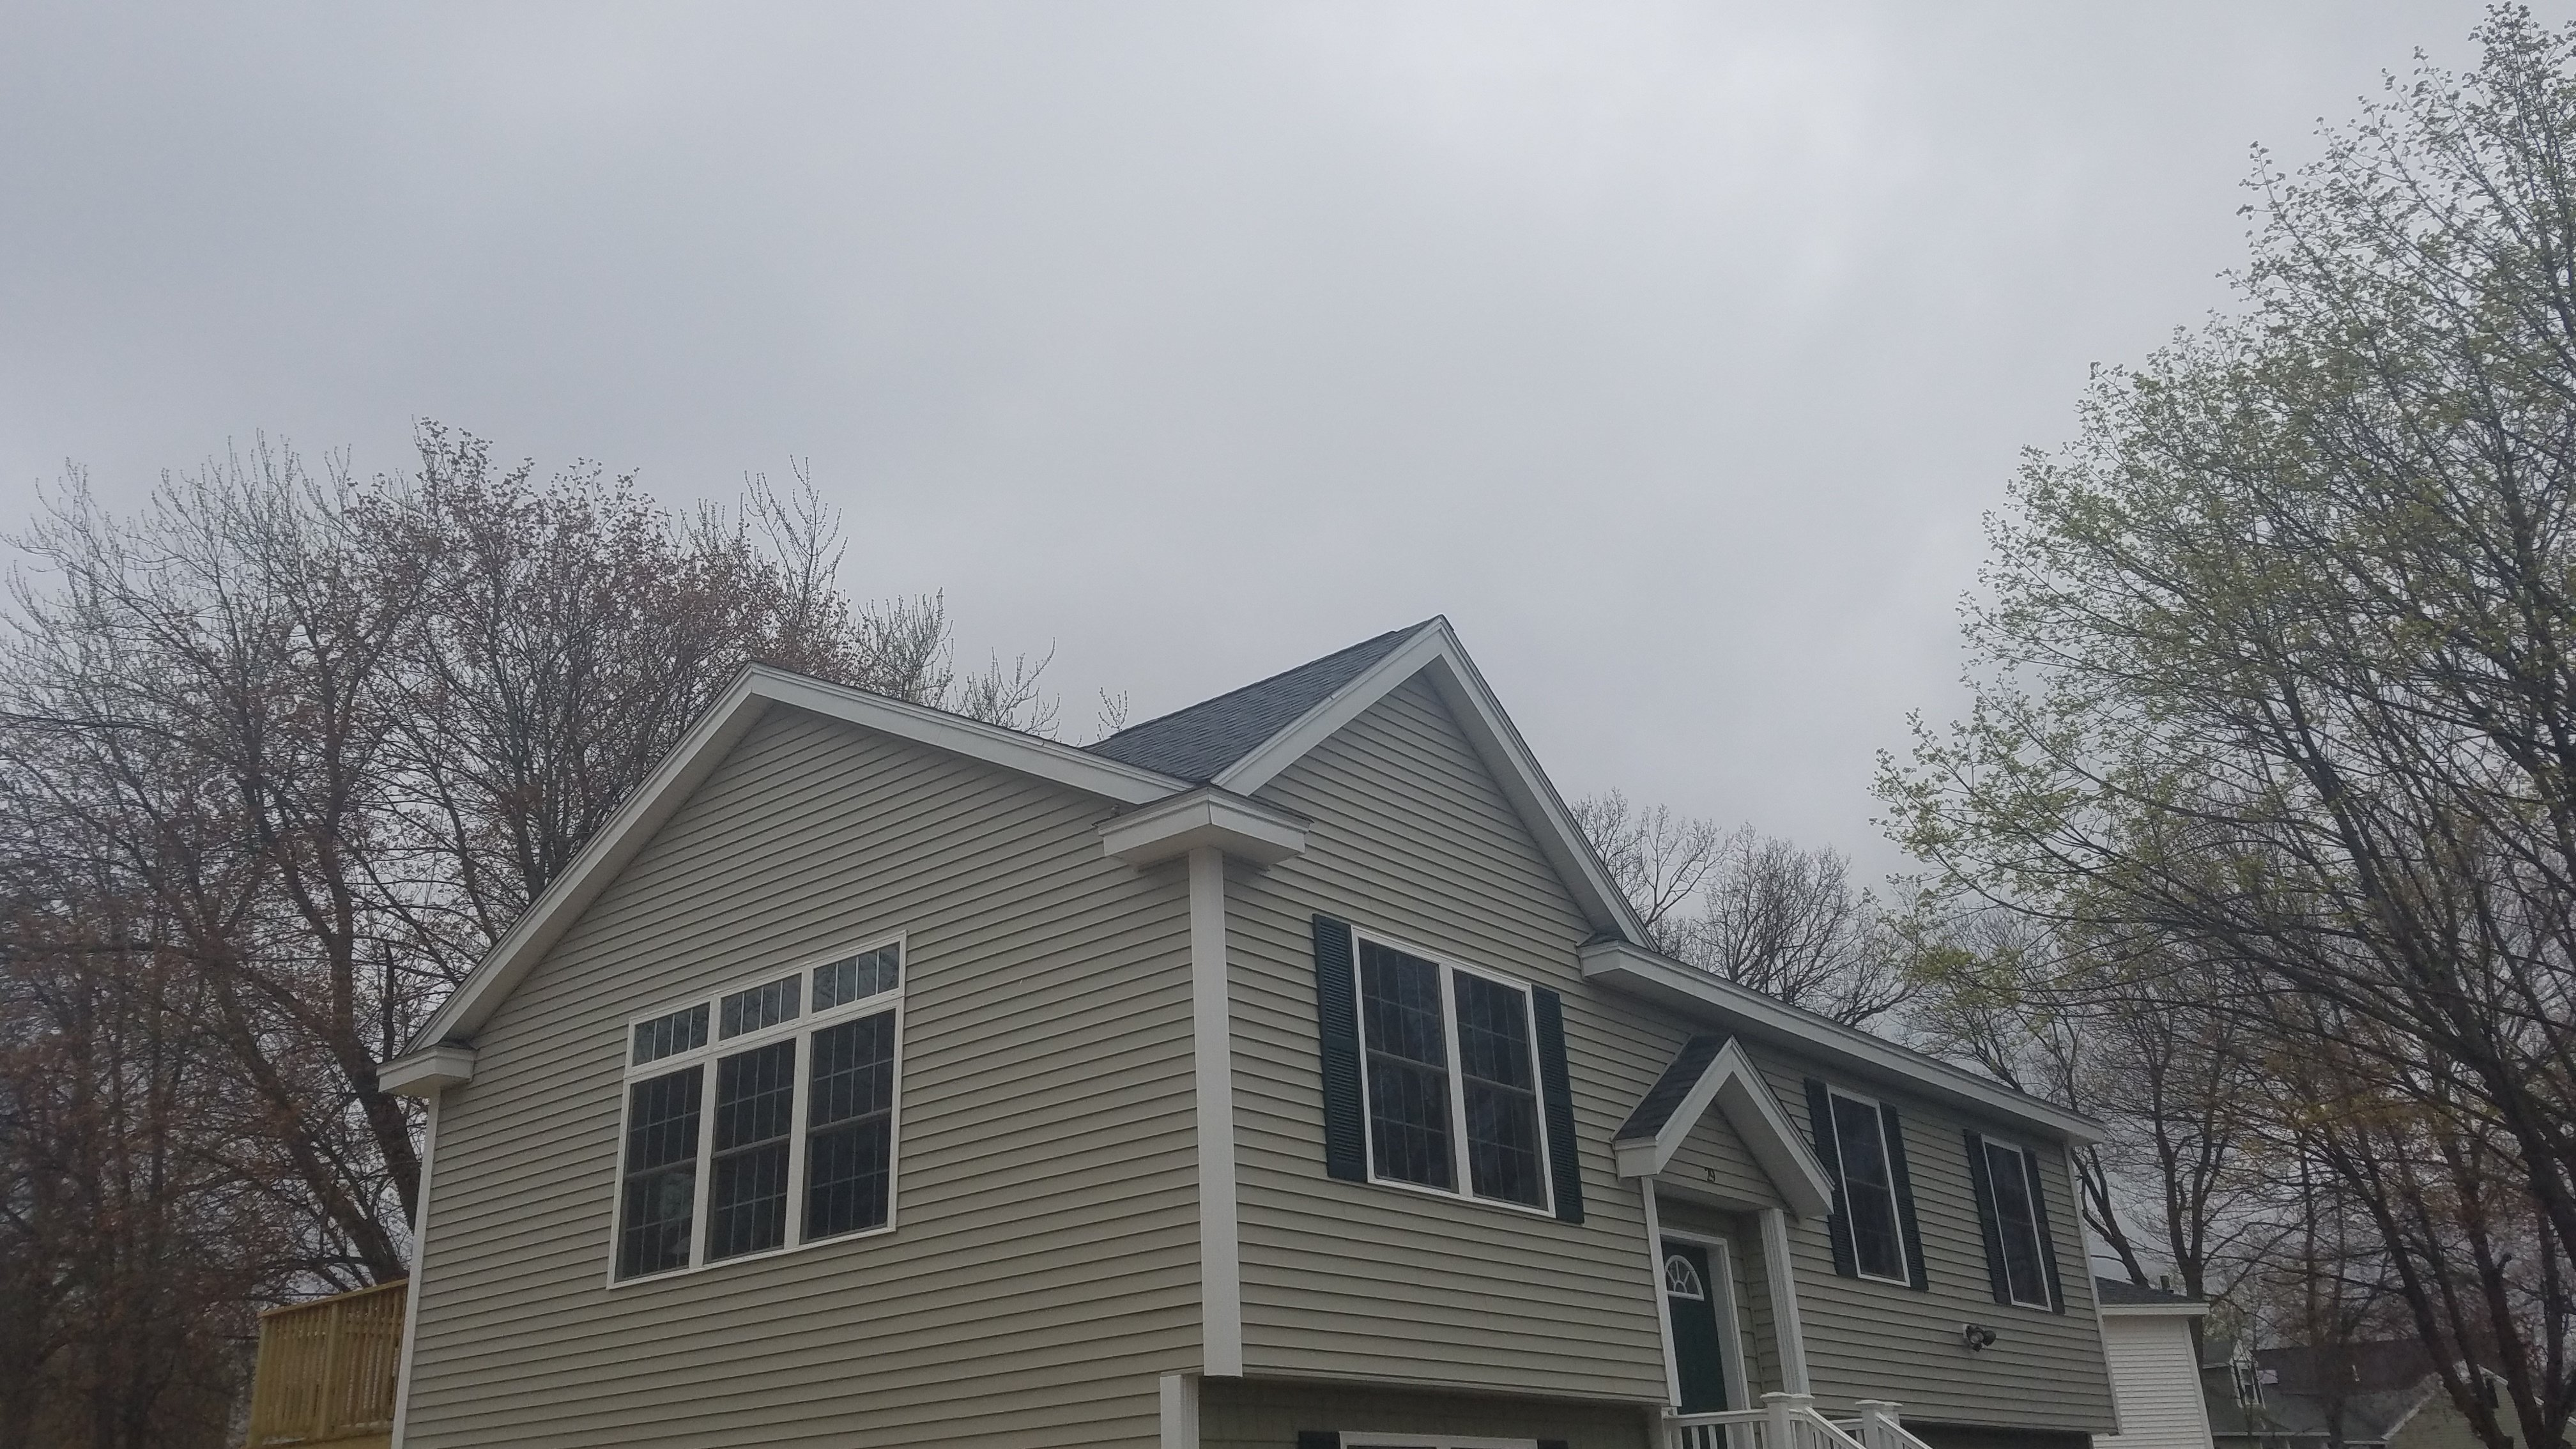 Residential Roof by A.S.A.P. Roofing NH | 29 Slade Street, Manchester NH